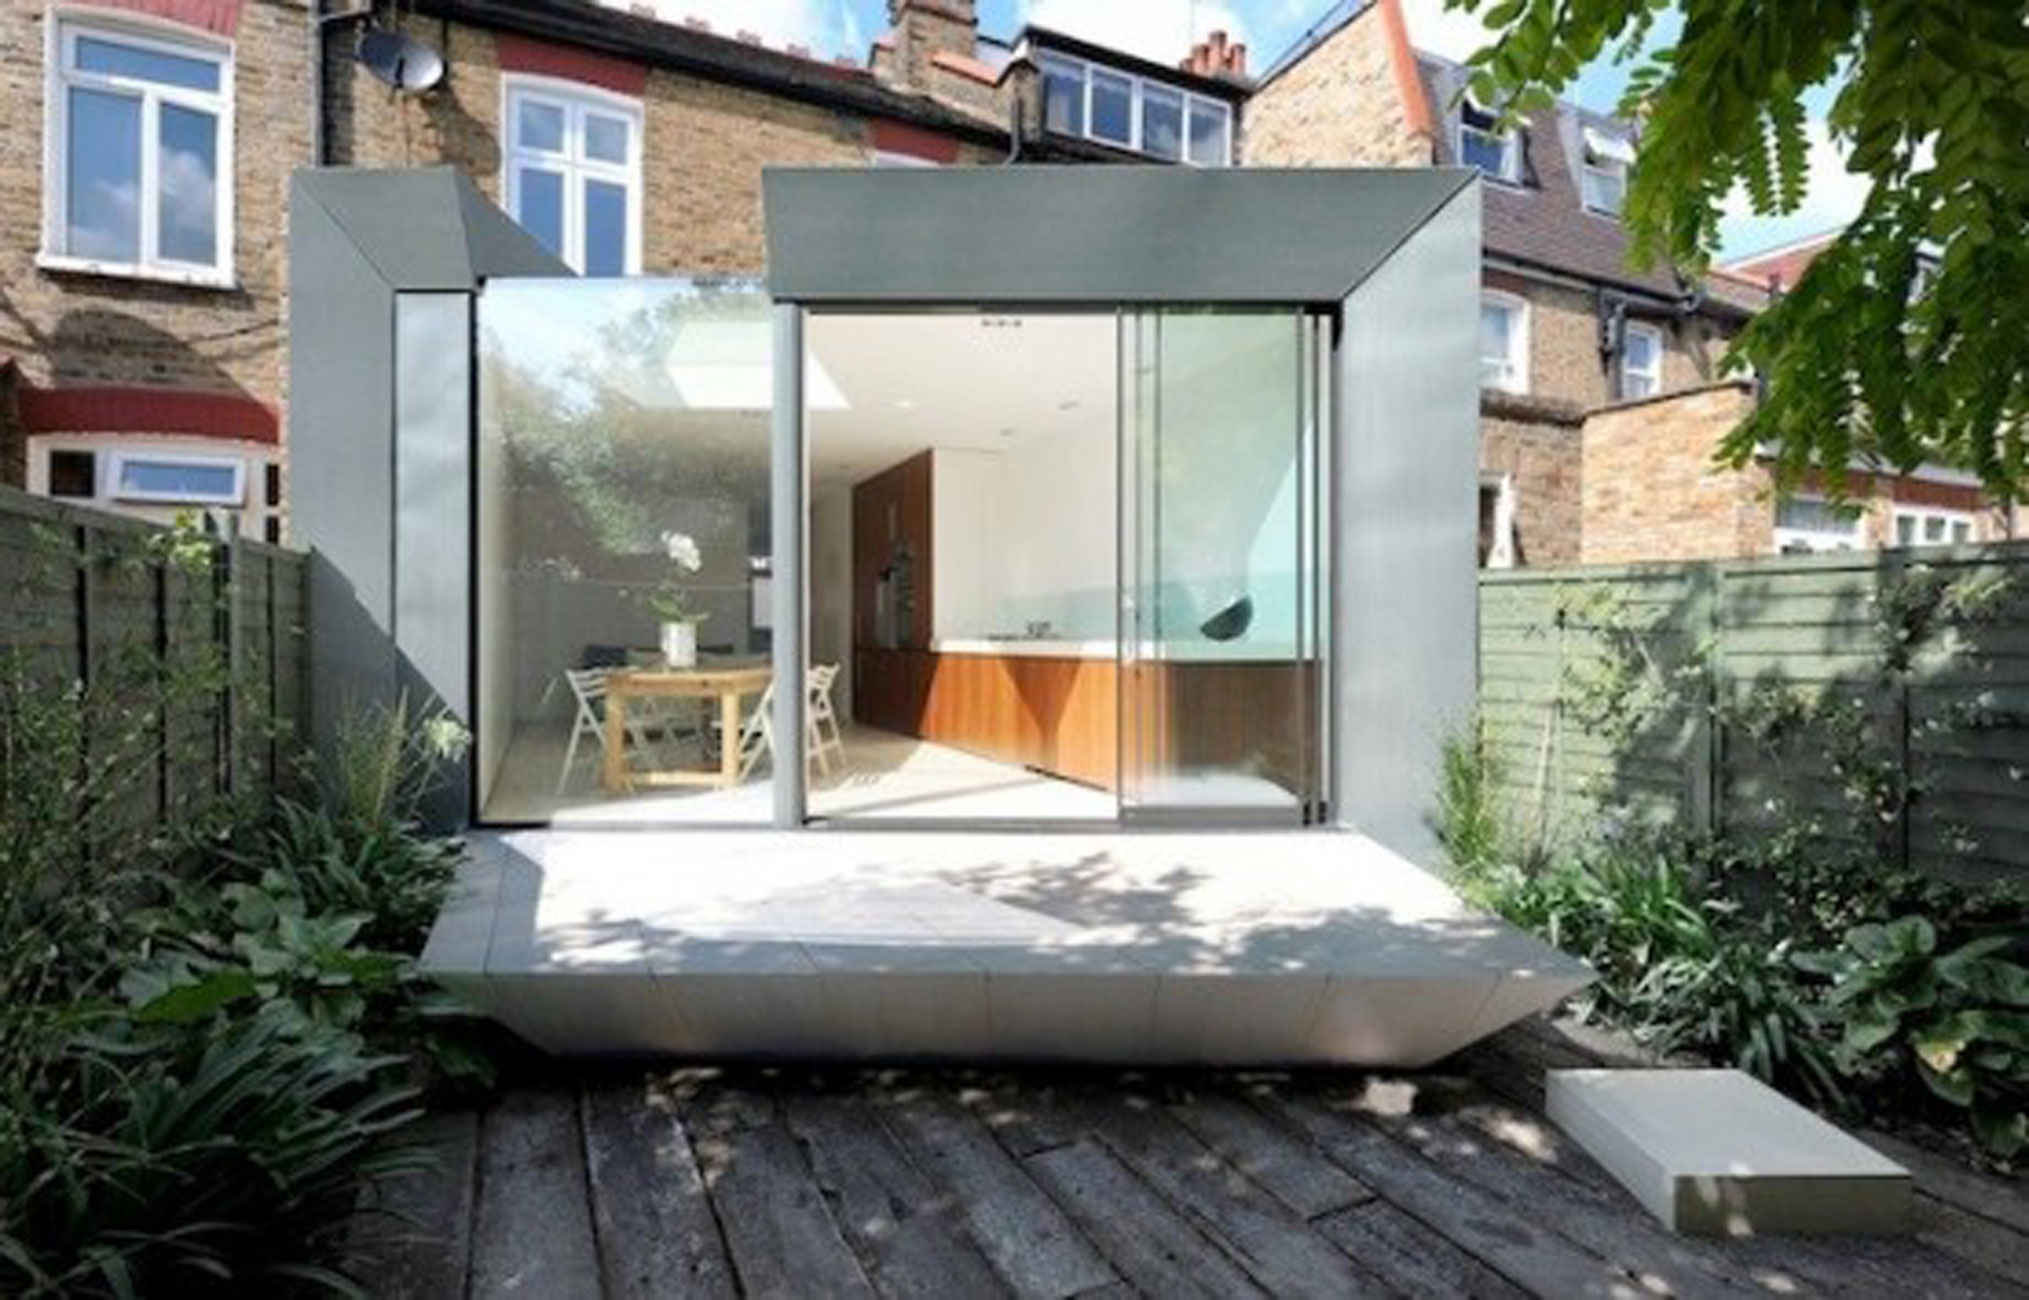 Simple Modern Terrace House Design In LondonHouse Glass